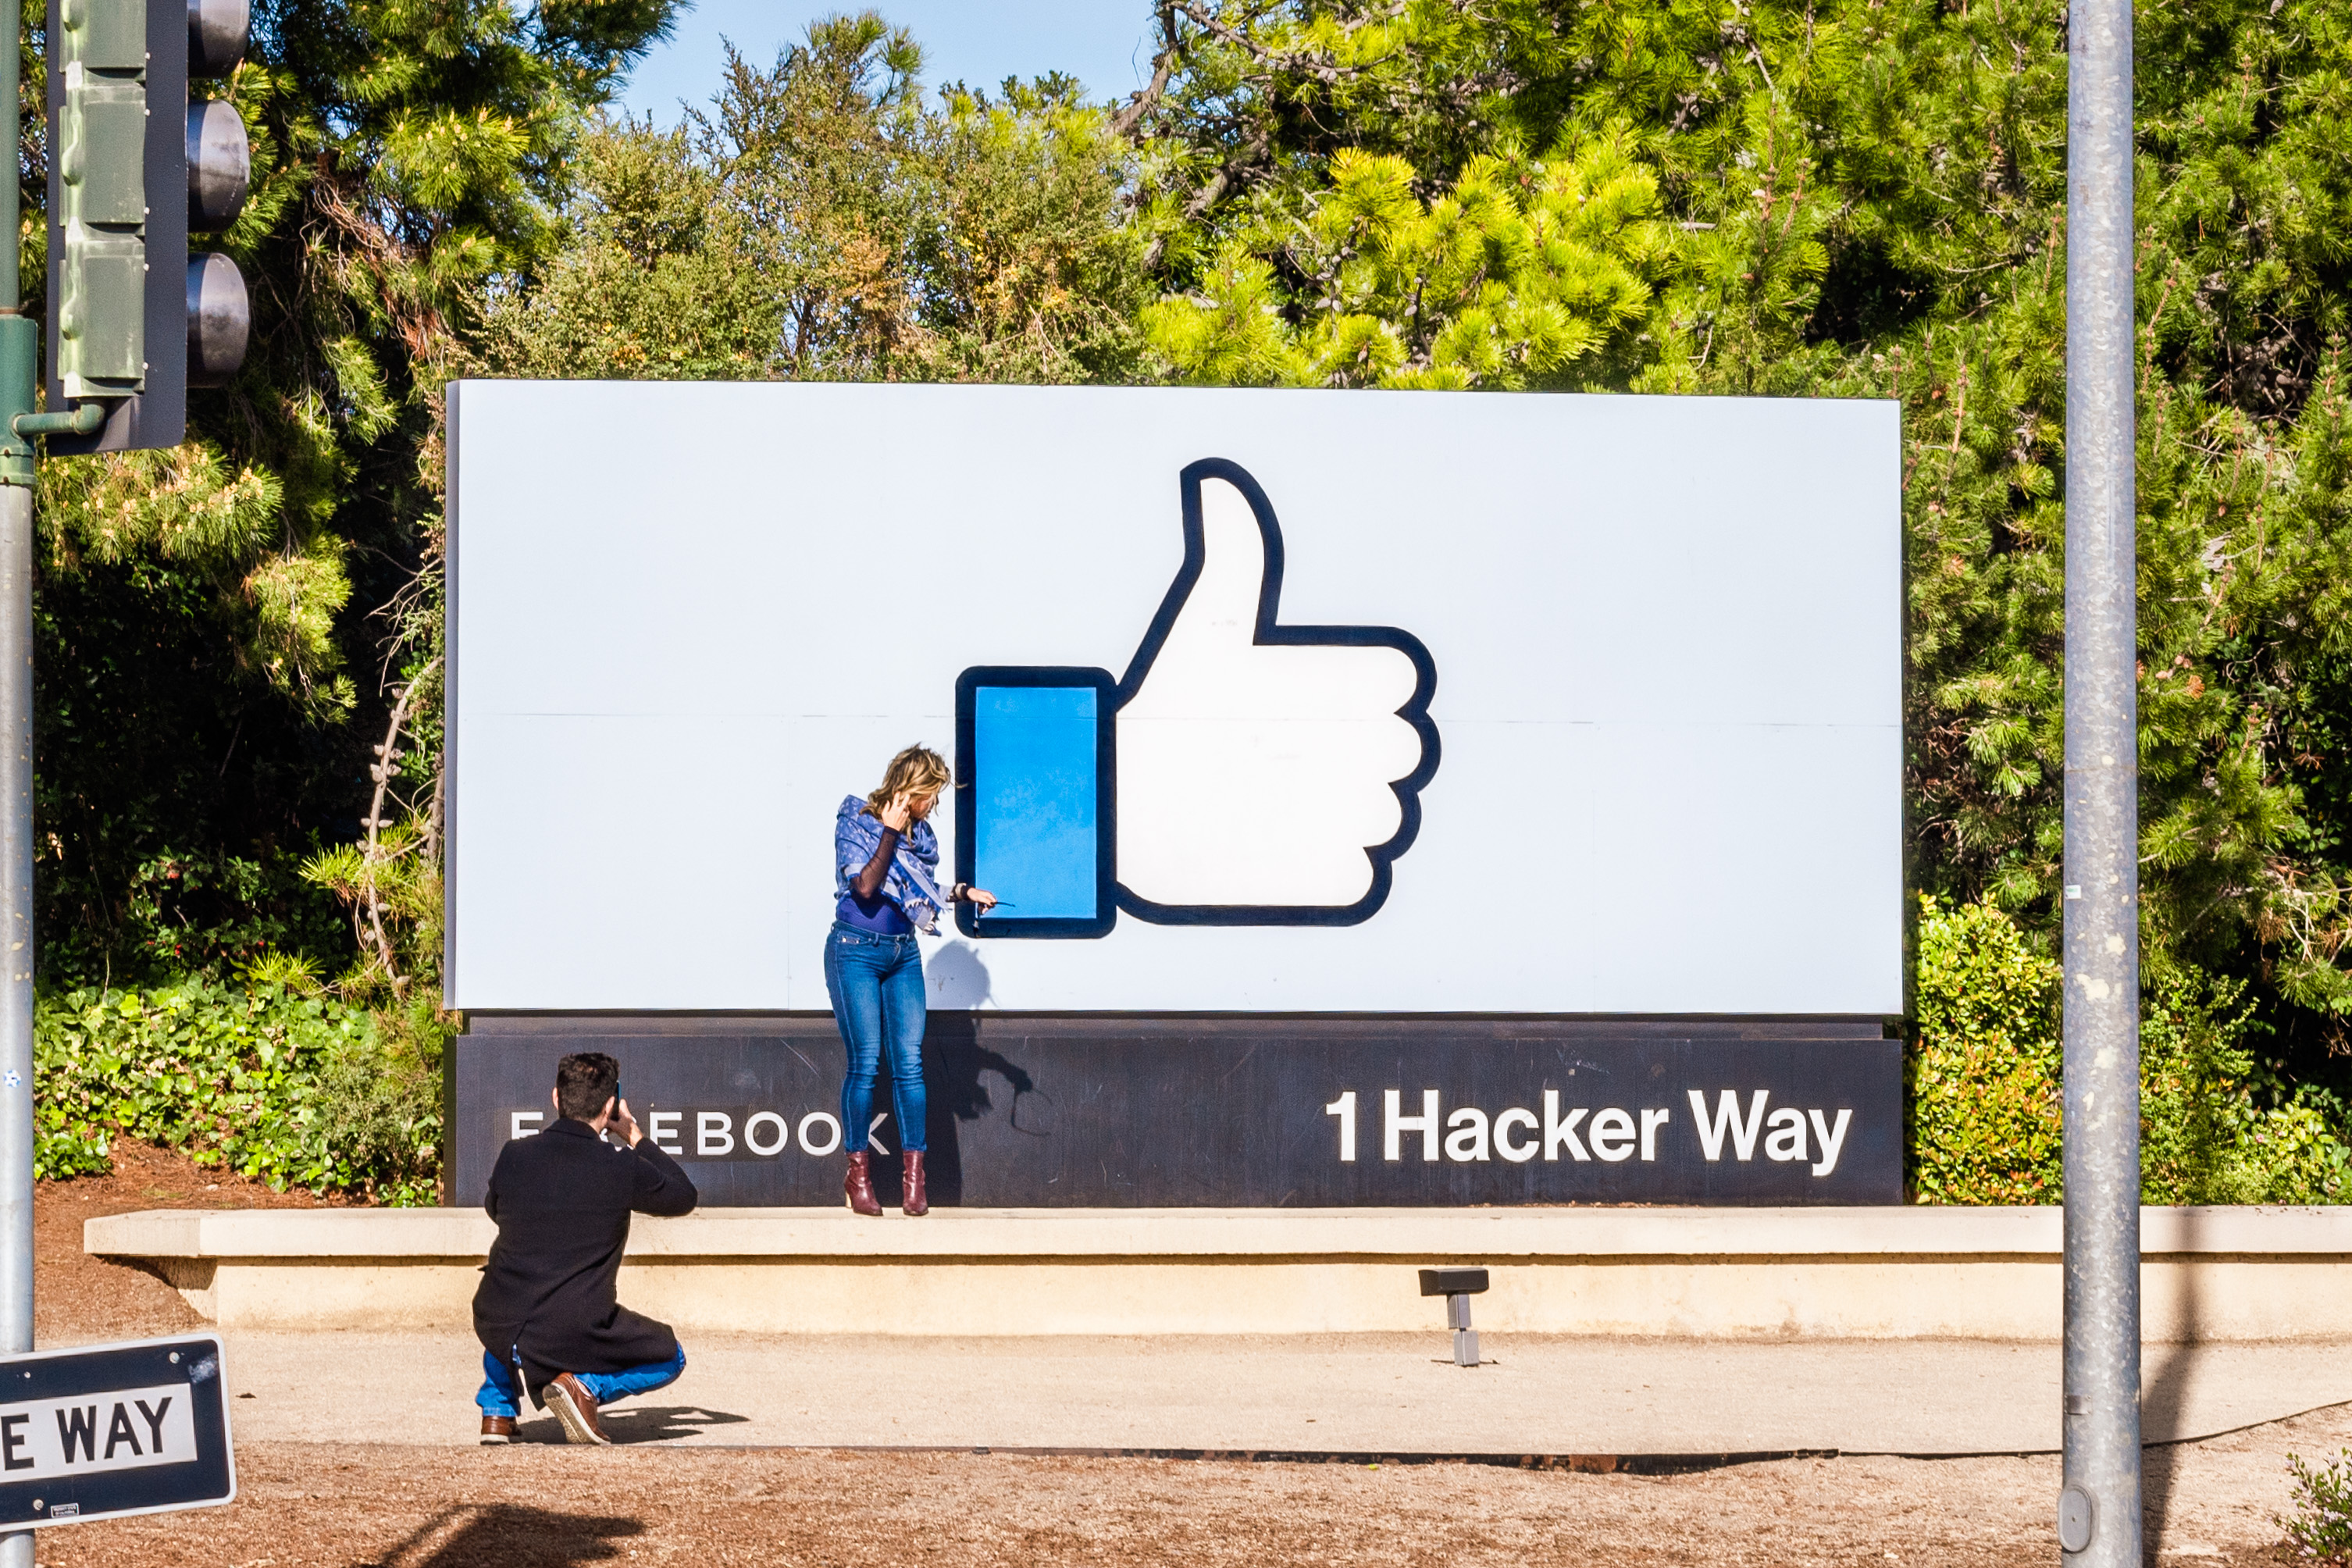 The data scraper can link millions of Facebook profiles to email addresses